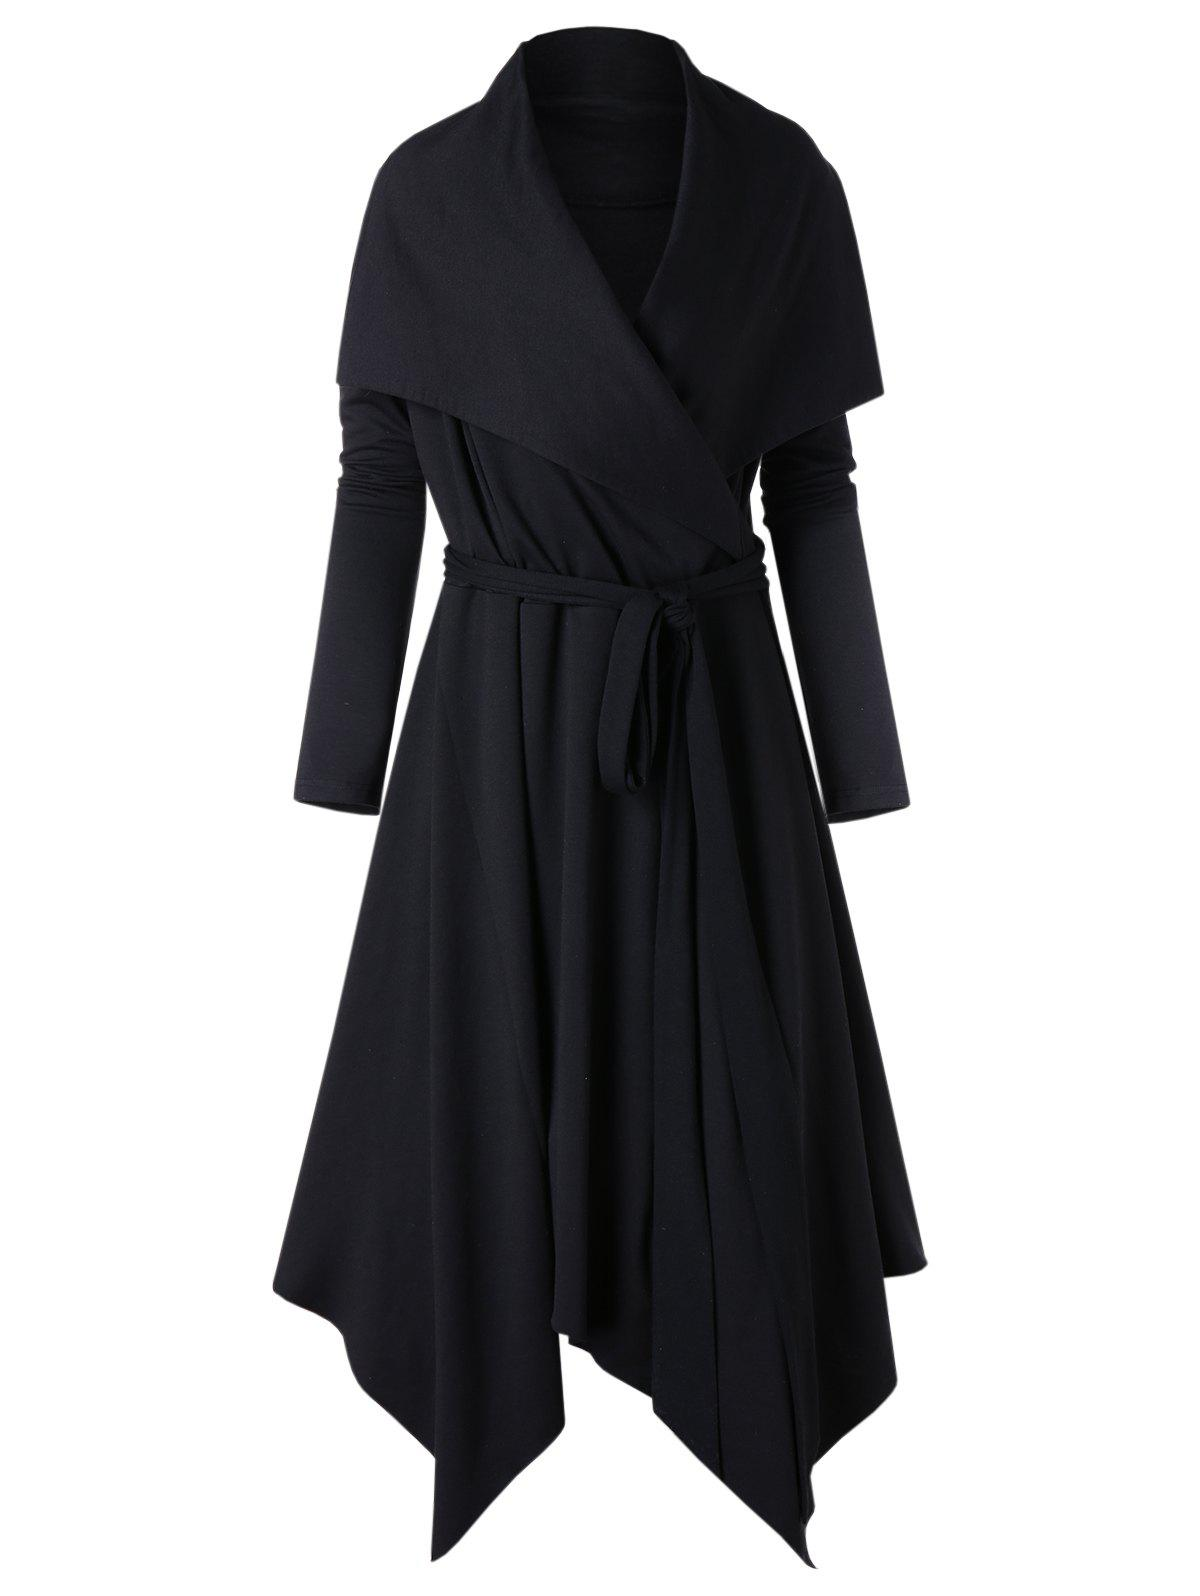 Chic Turn Down Collar Plus Size Asymmetrical Coat